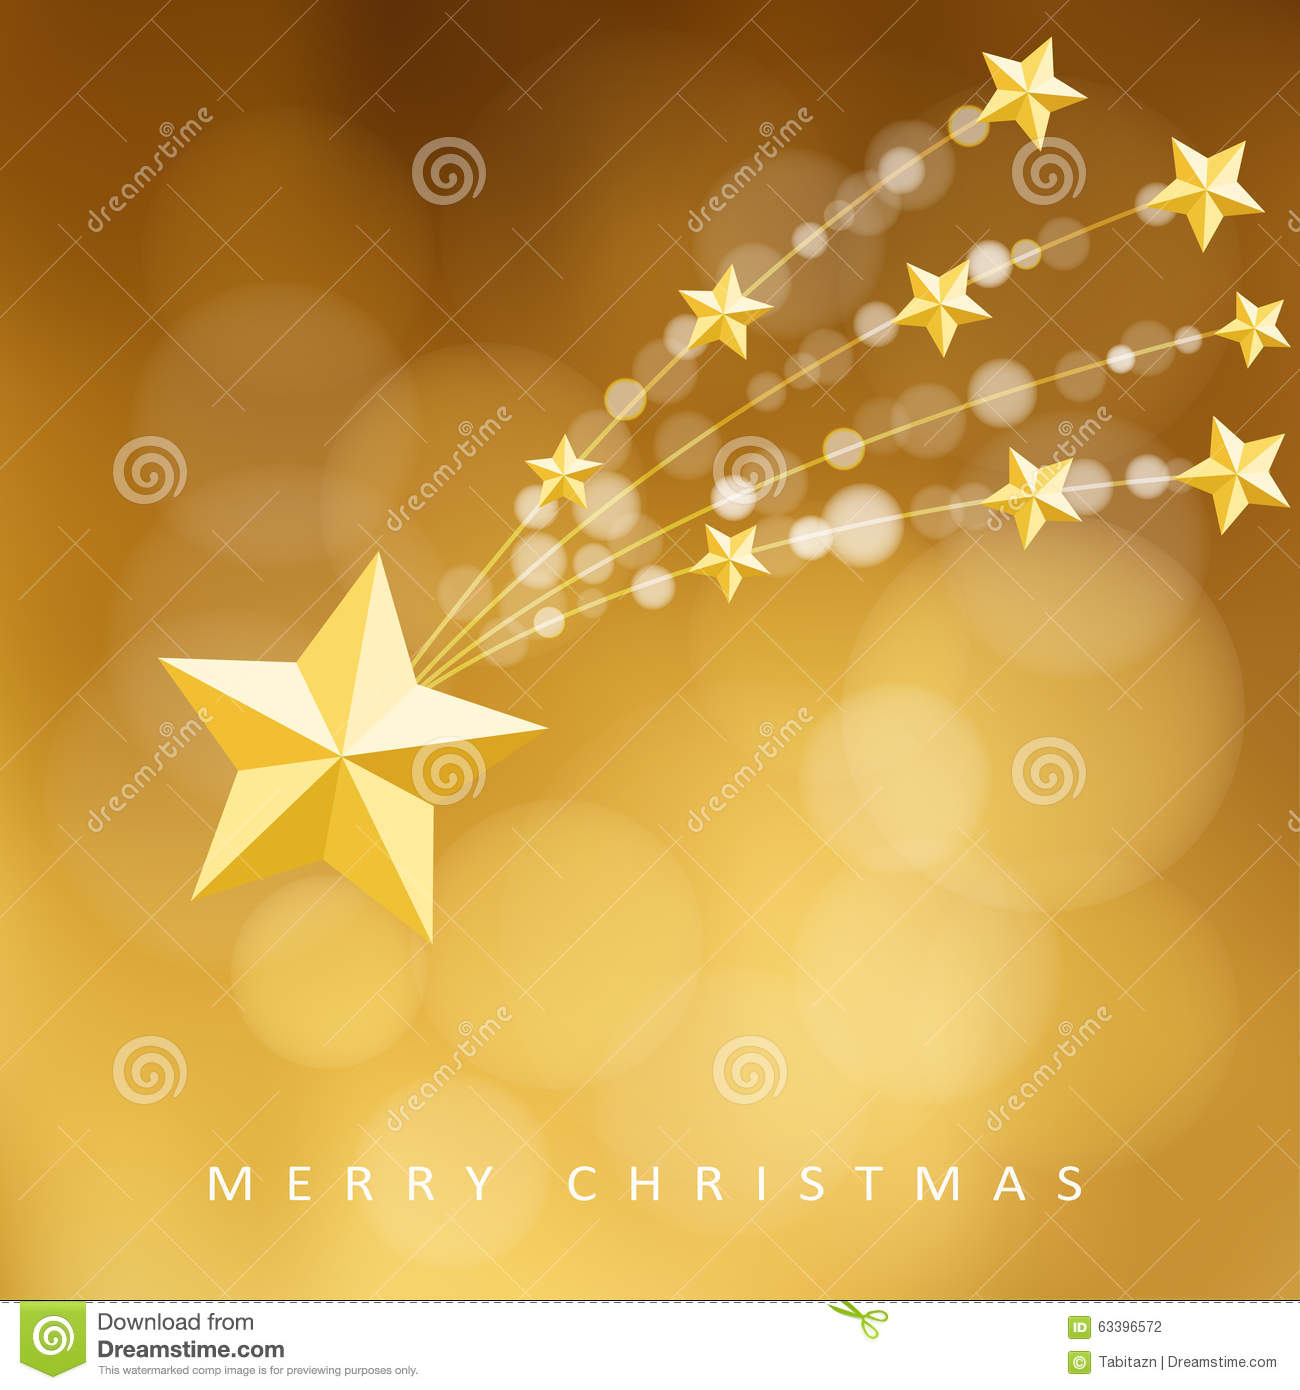 Falling Stars Wallpaper Modern Golden Christmas Greeting Card Invitation With